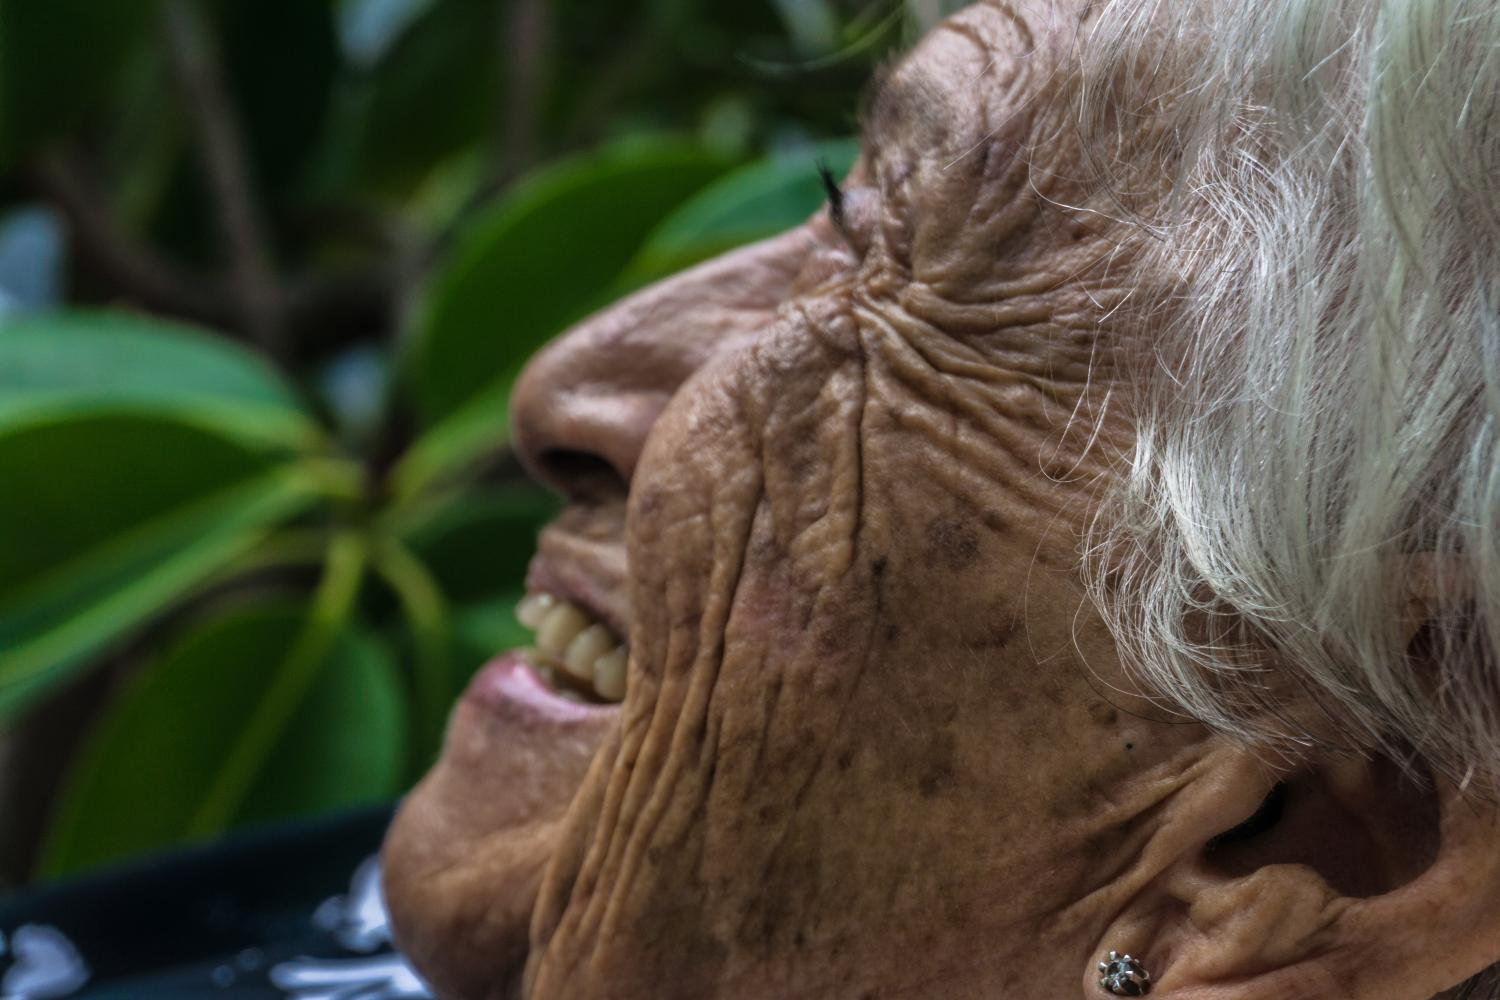 old wrinkly lady smiling and looking up green plants background